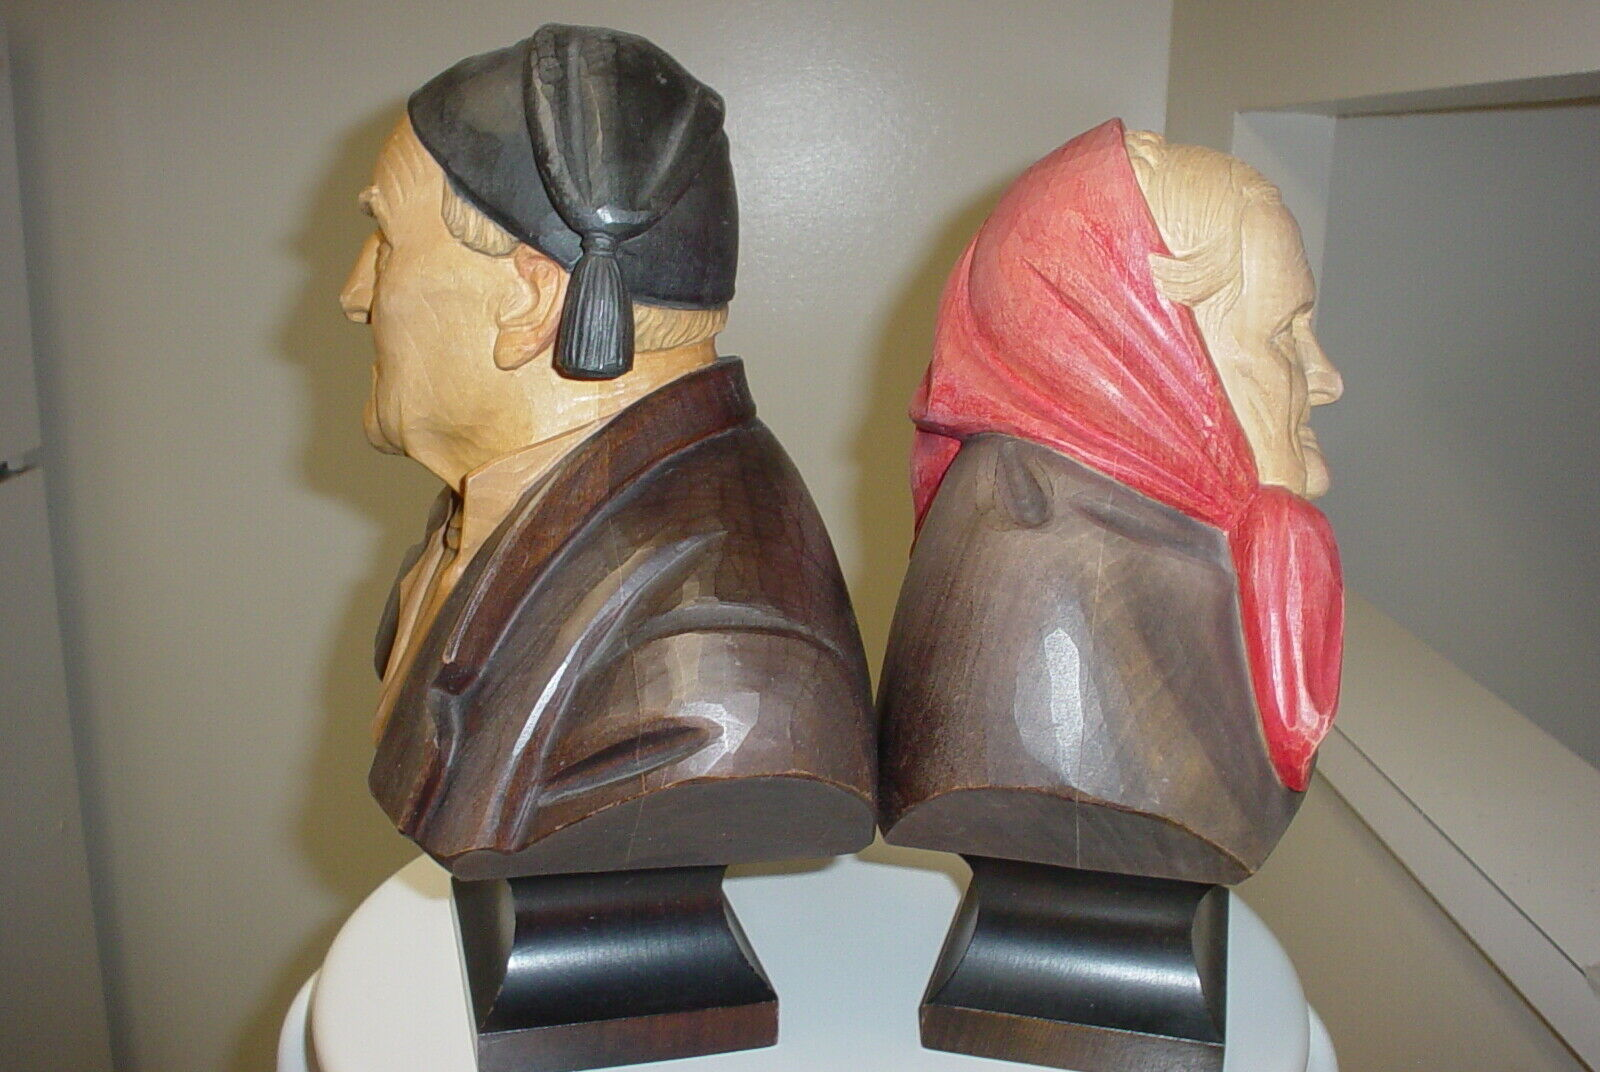 Two Carved Outstanding Quality Busts - $95.00